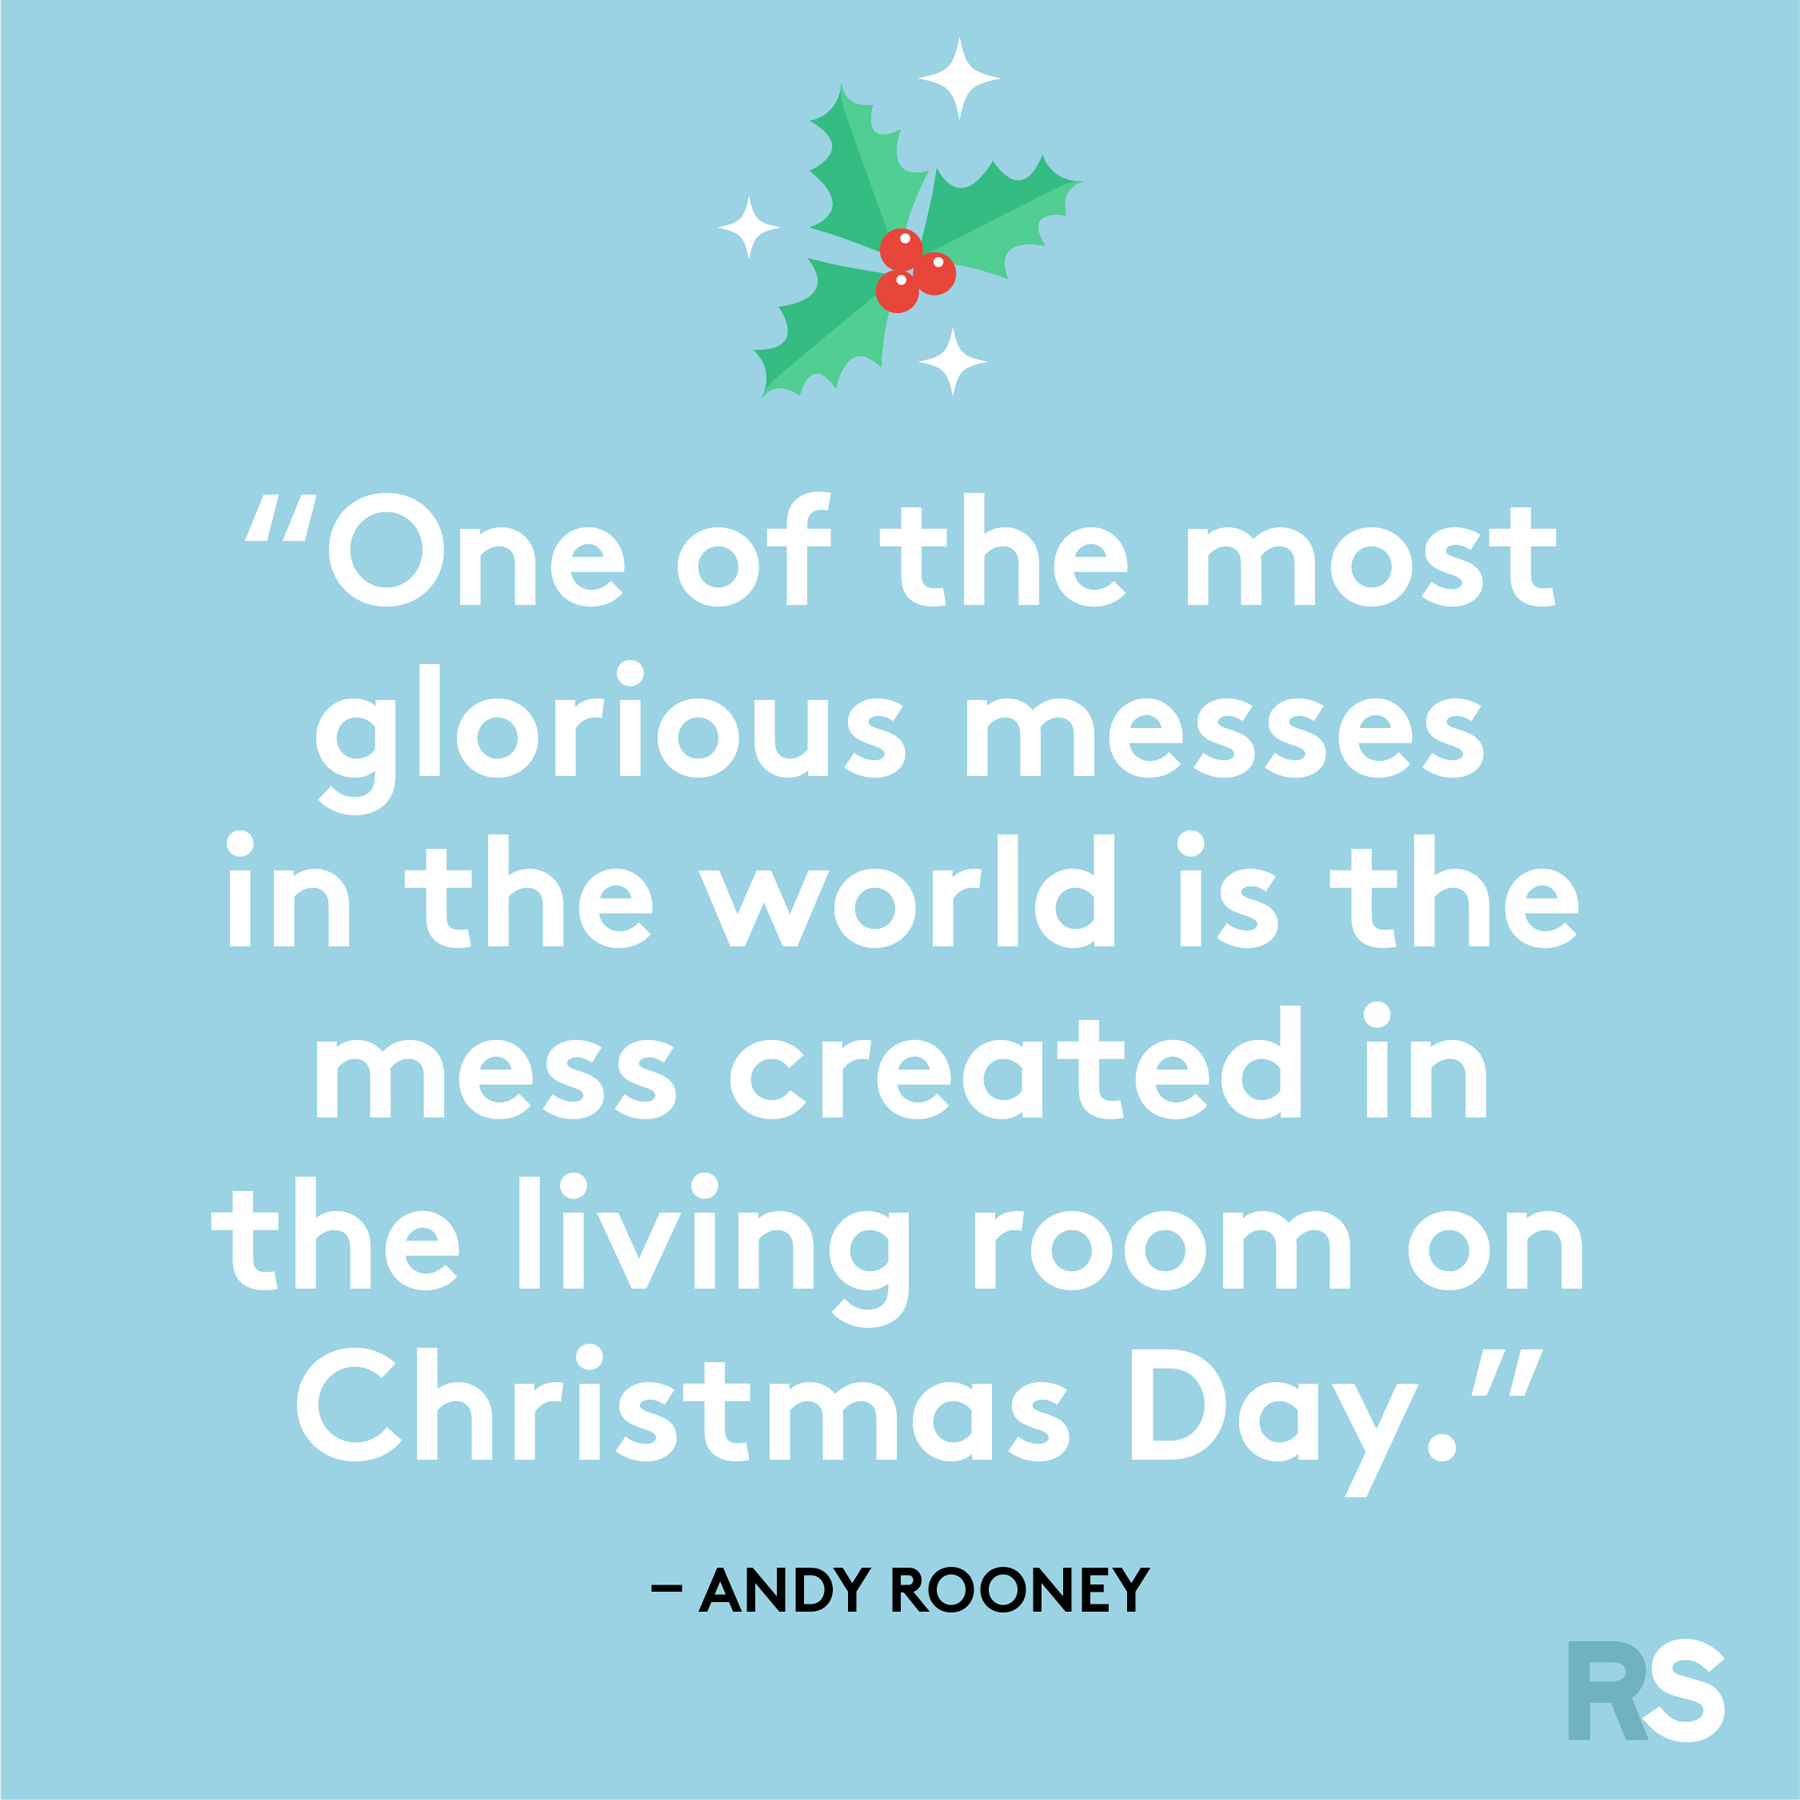 Best Christmas quotes - Andy Rooney